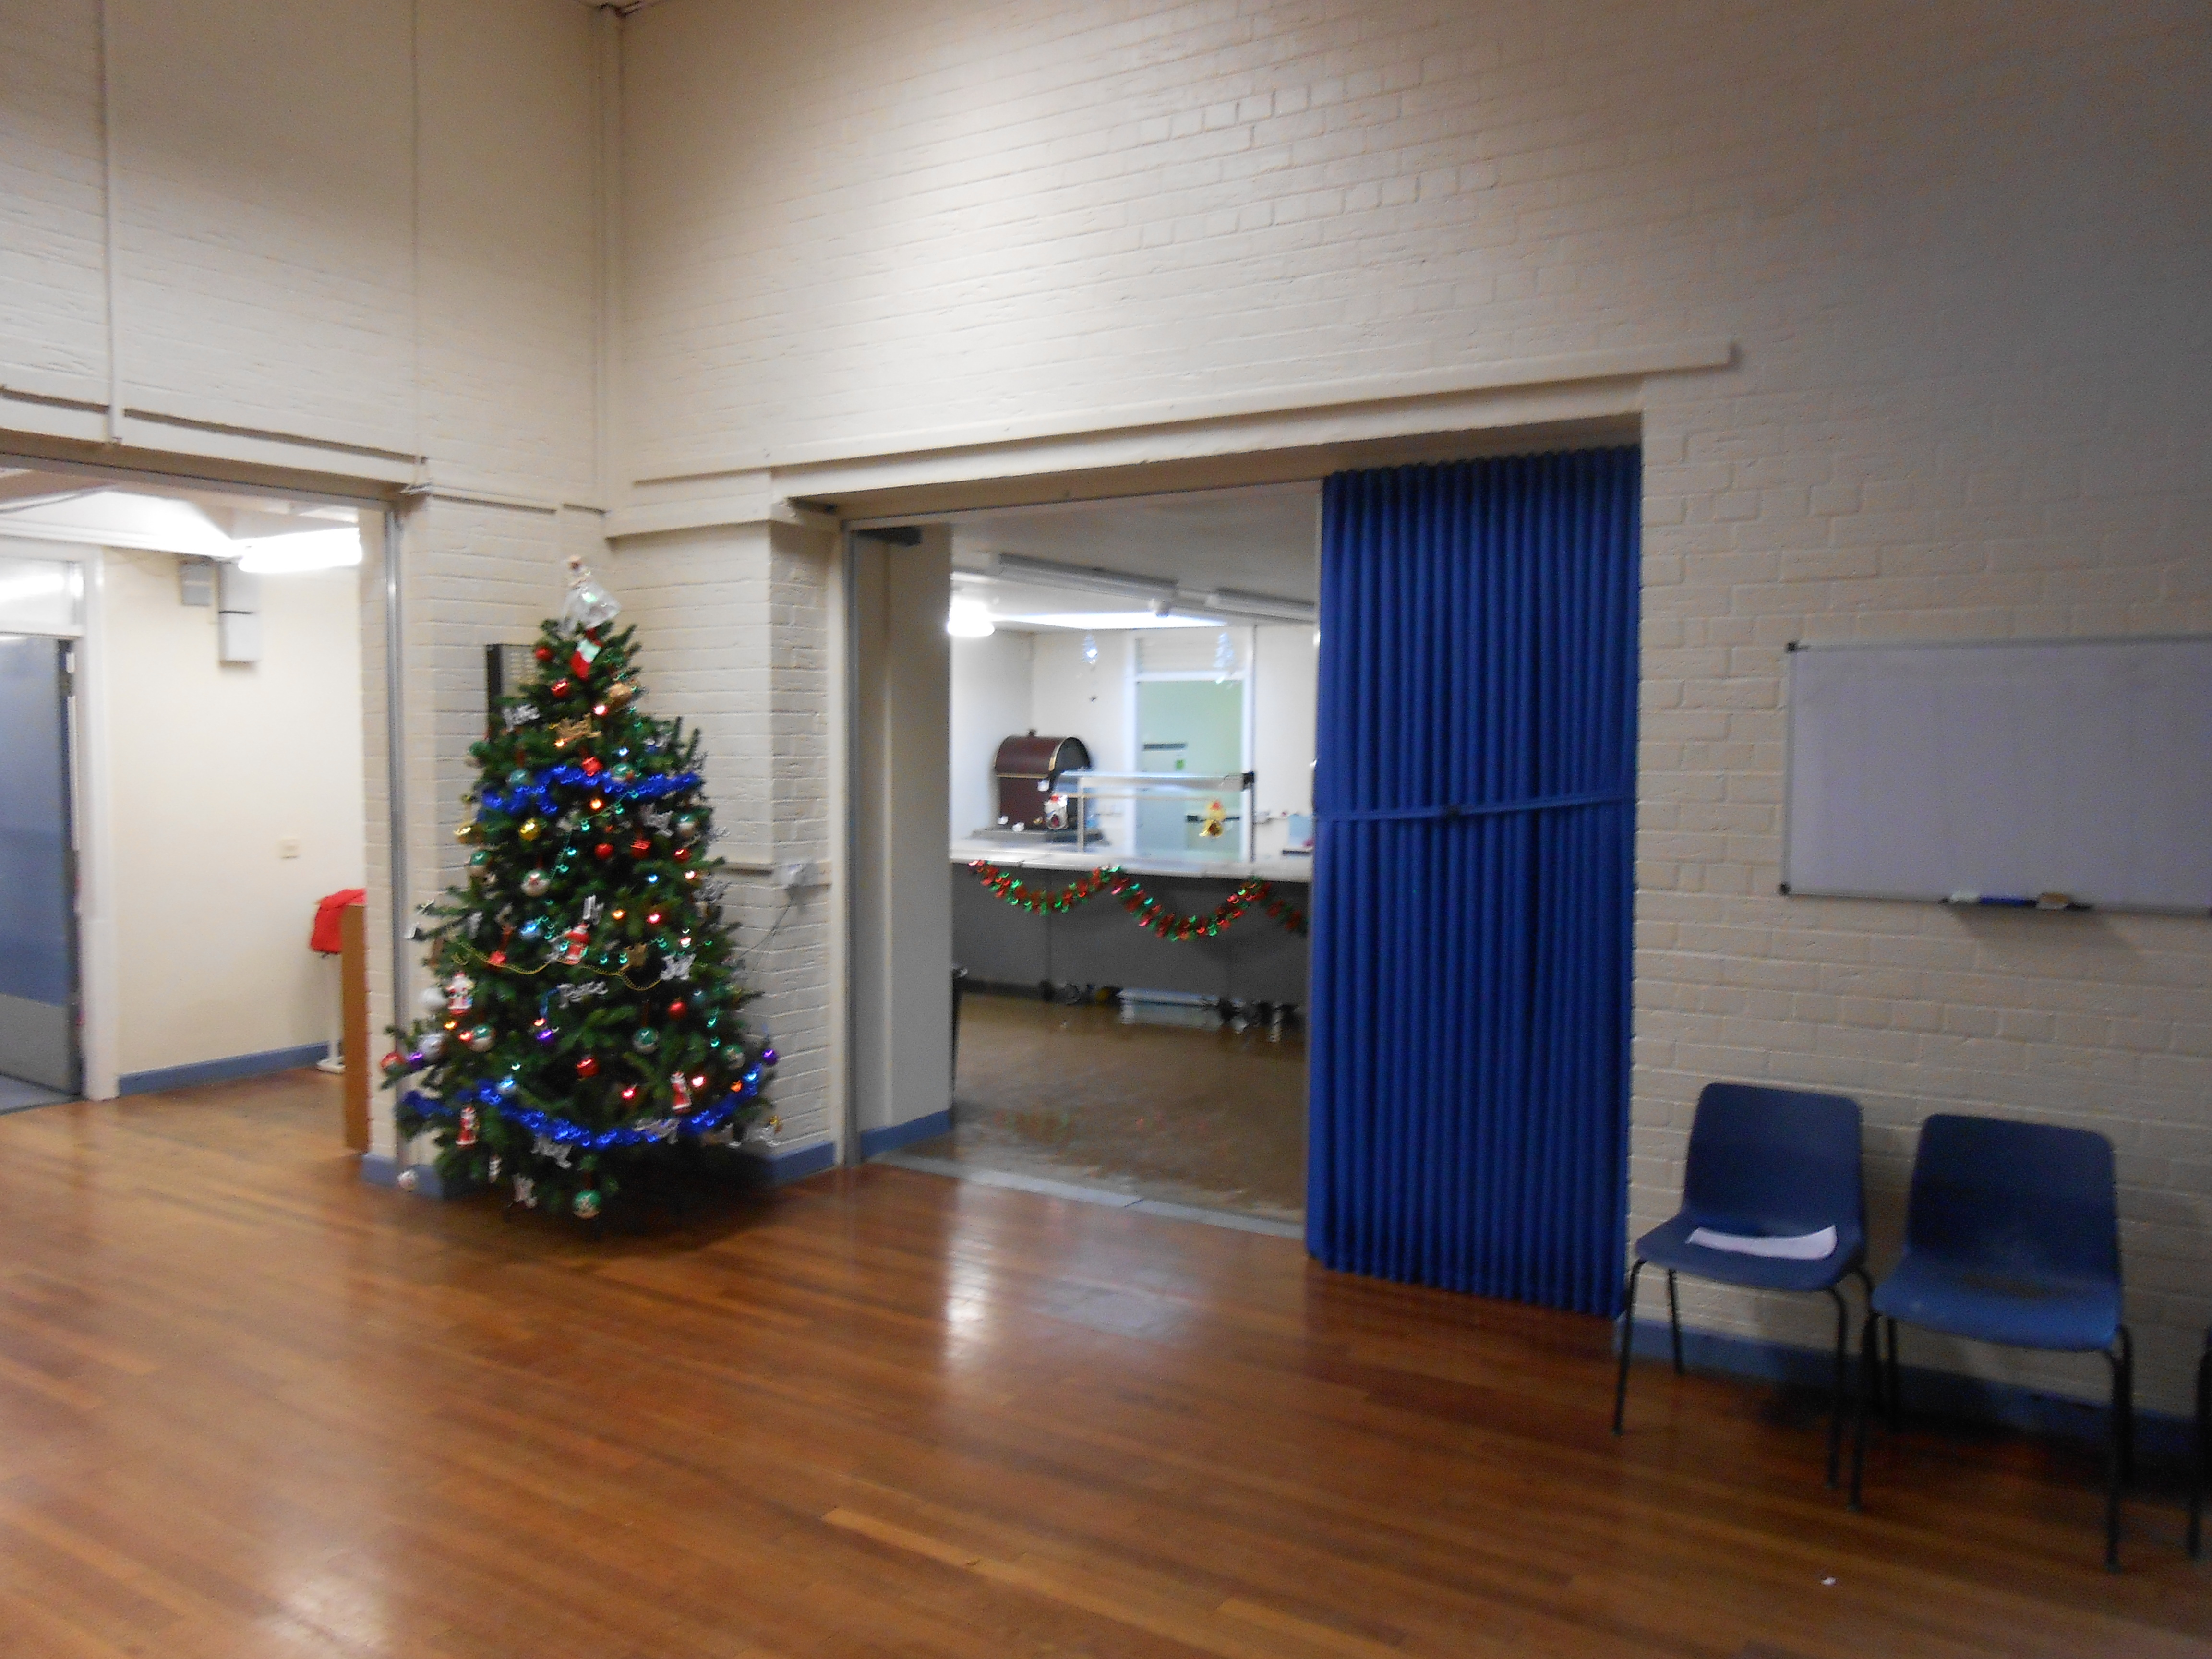 single leaf folding room divider in a school hall